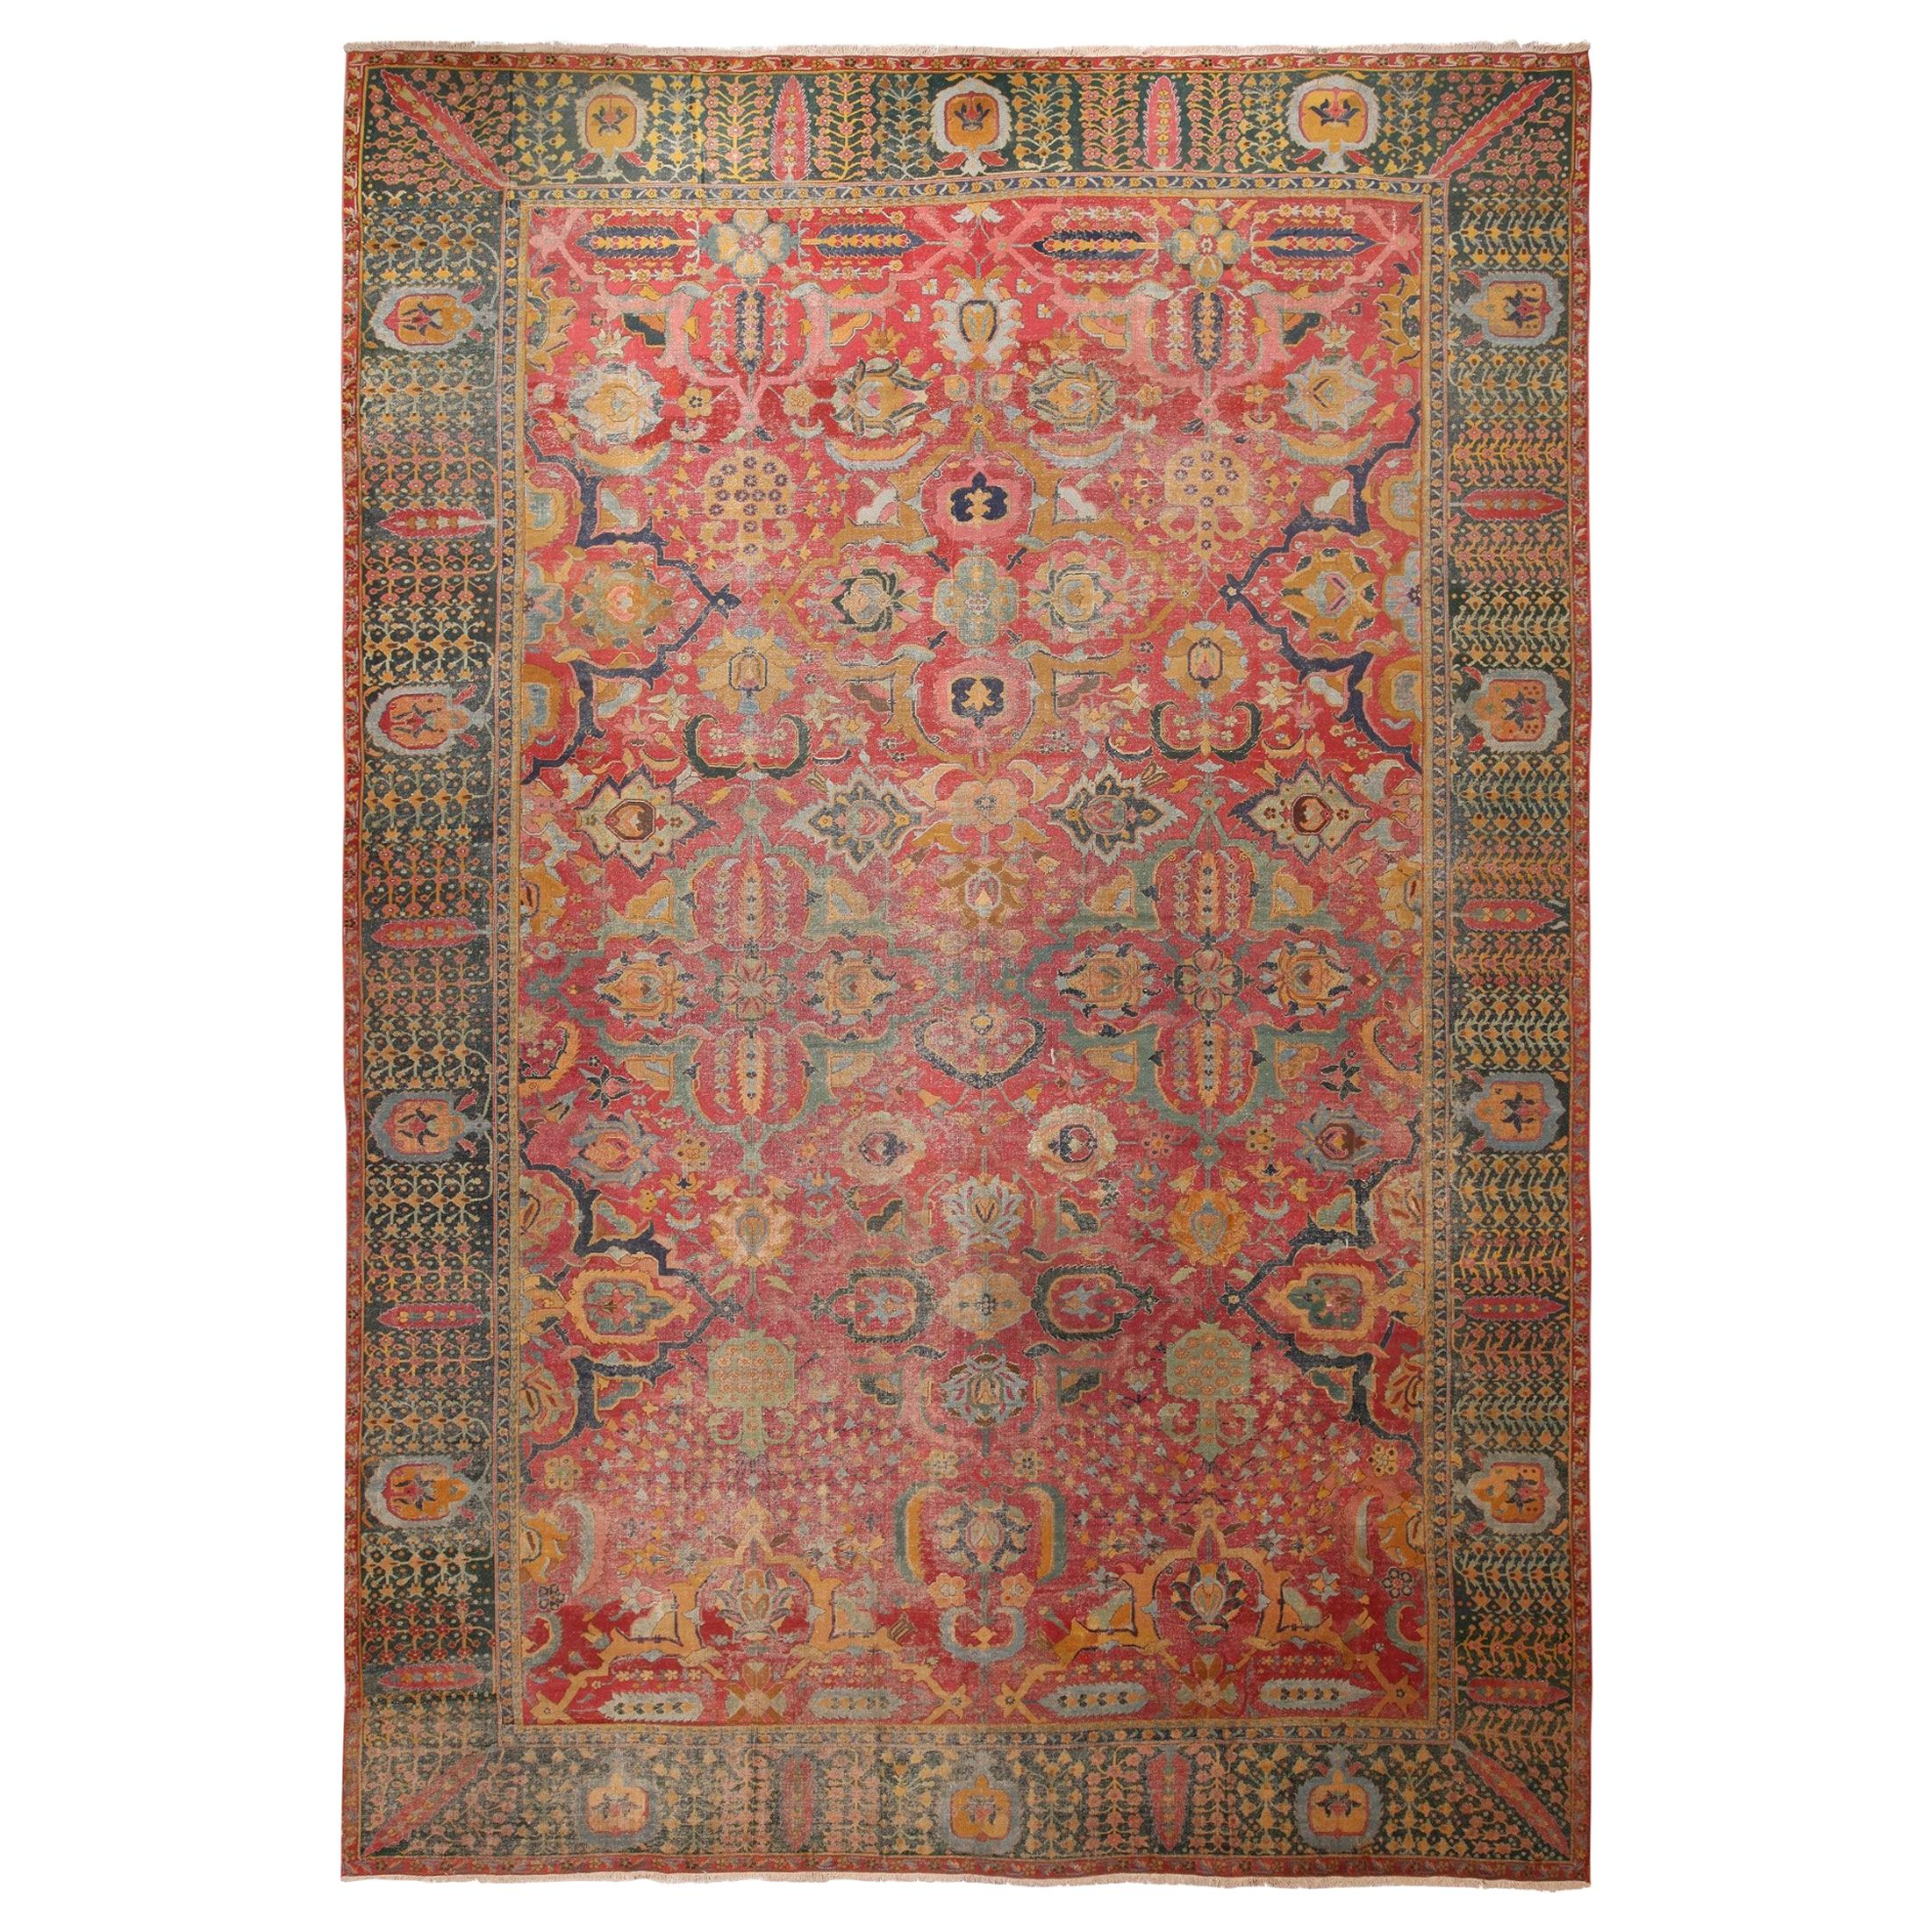 17th Century Antique Persian Isfahan Rug. Size: 11 ft 10 in x 18 ft 1 in